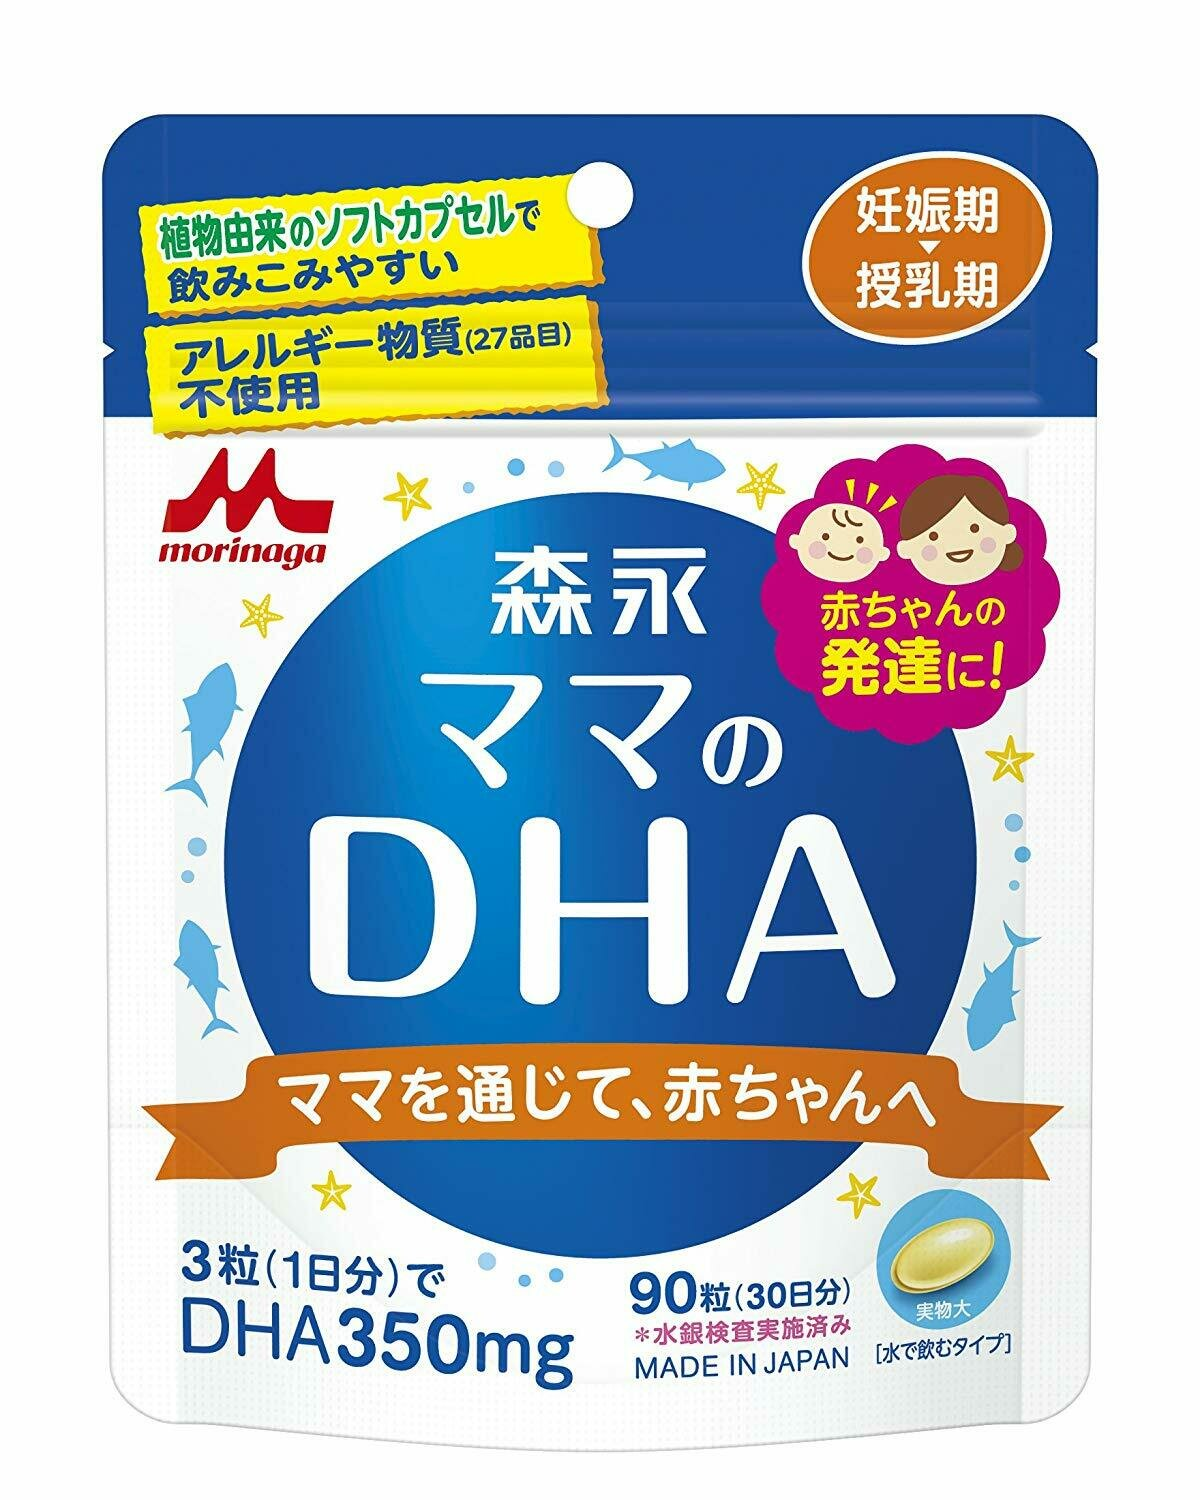 DHA for Mothers (30 days) 90tab.